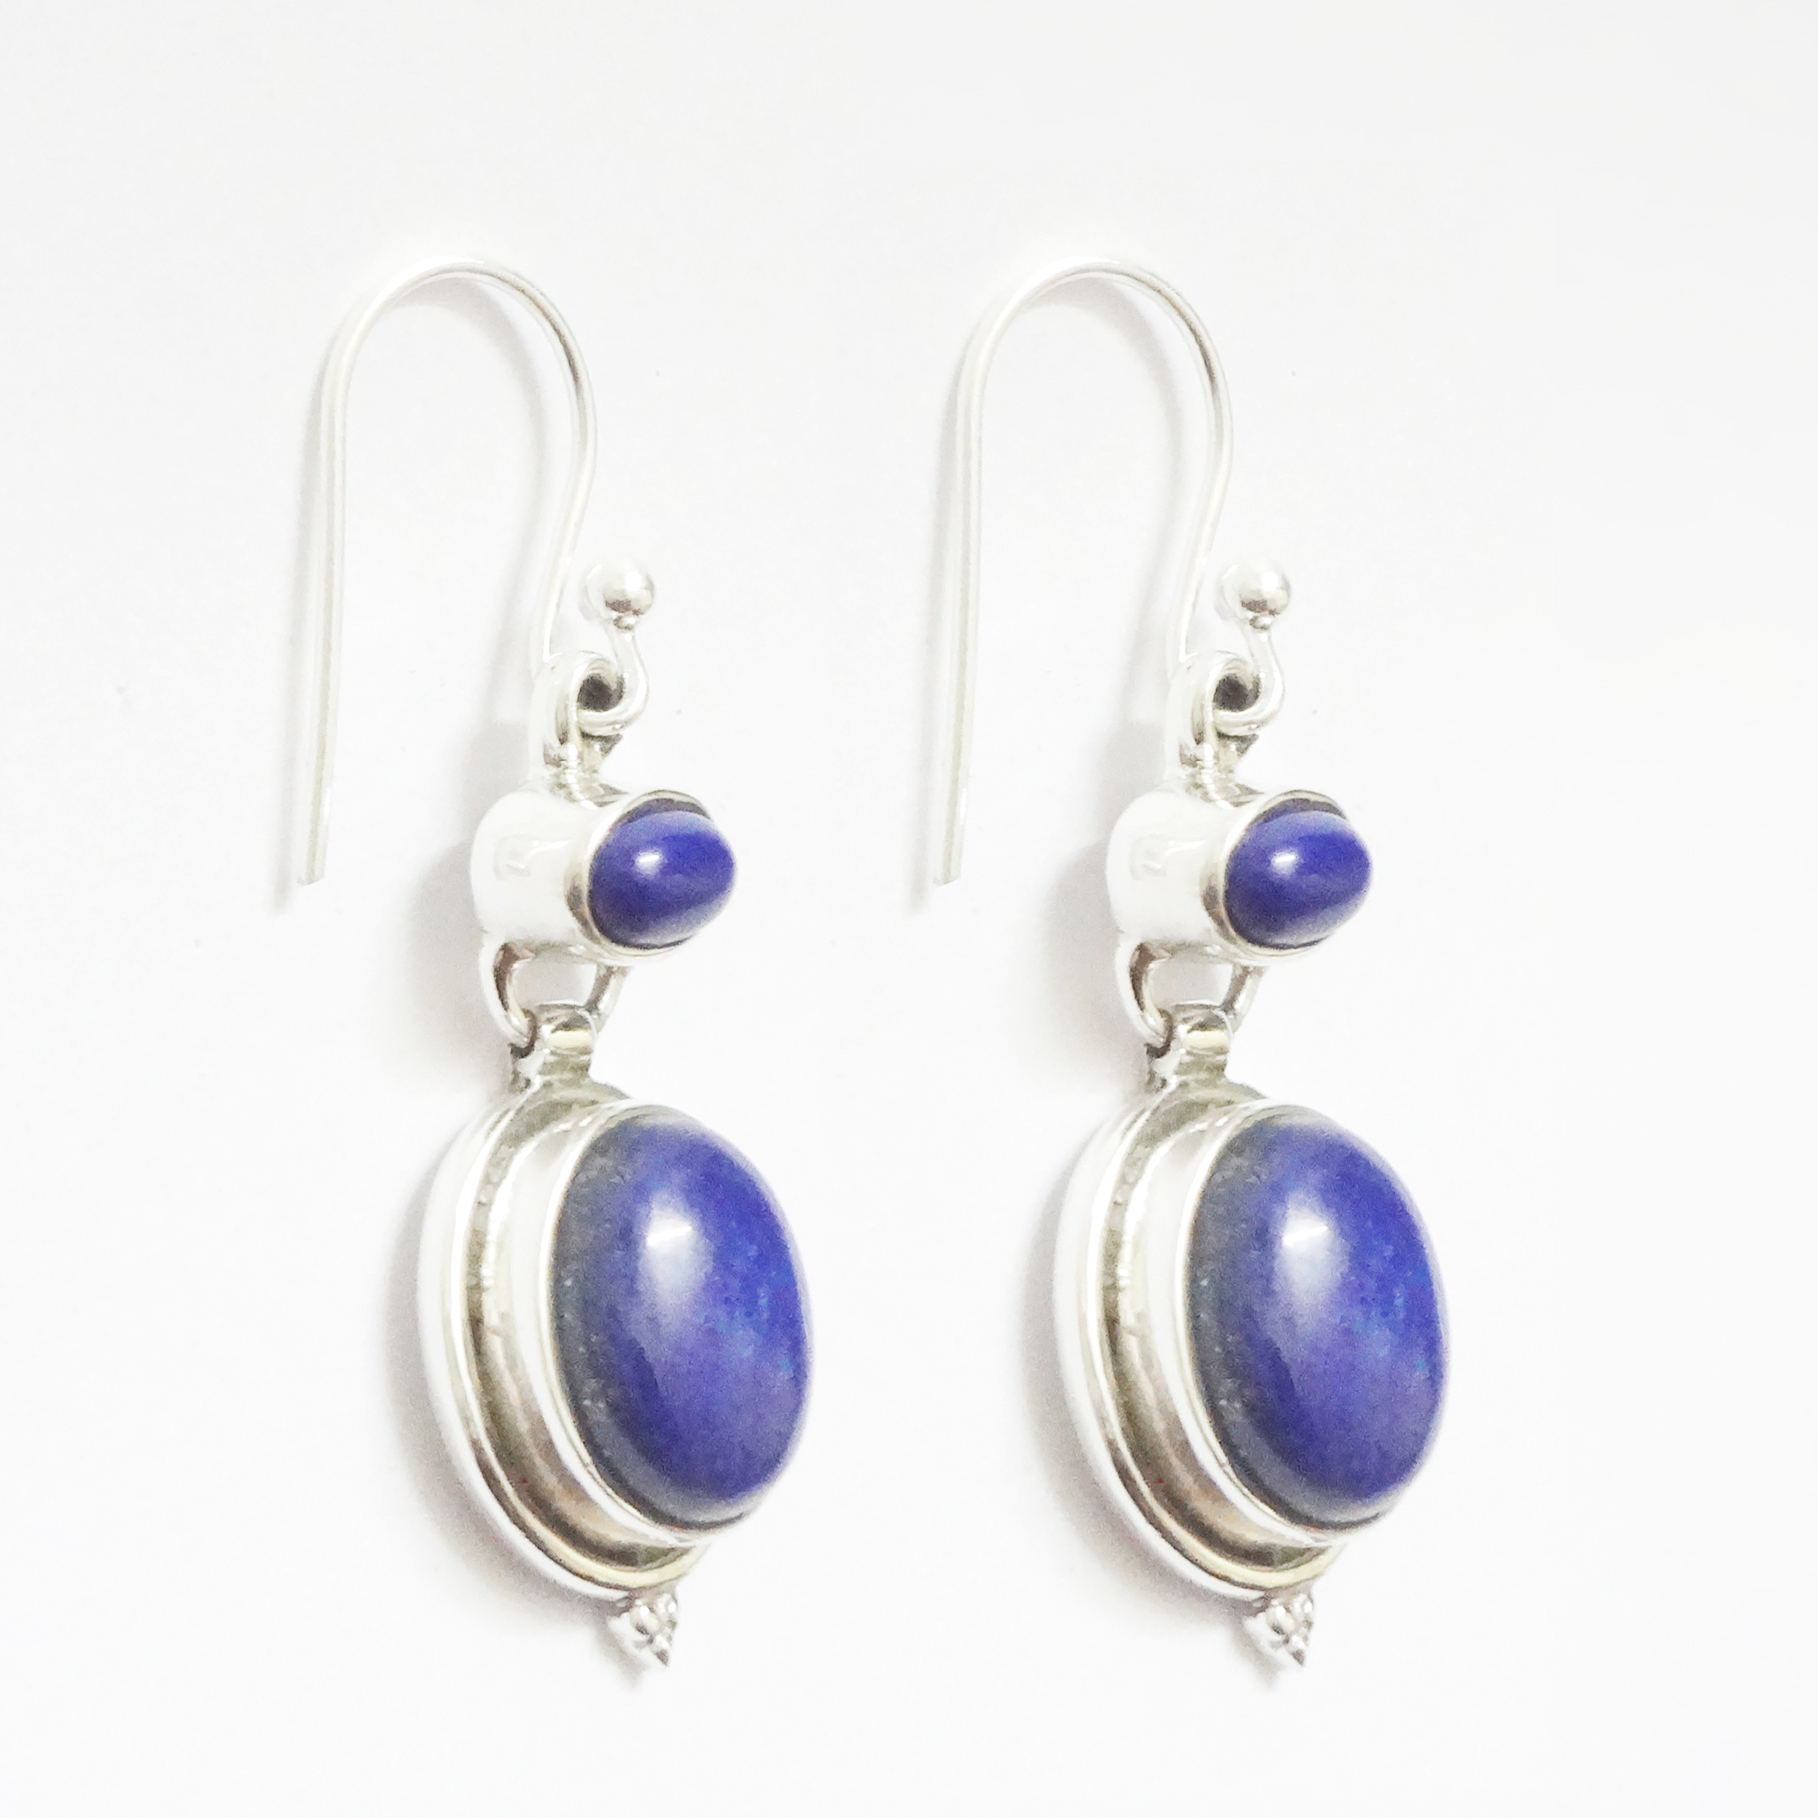 Handcrafted-Lapis-Lazuli-925-Sterling-Silver-Earrings-Jewelry-Mothers-Day-Gift thumbnail 3